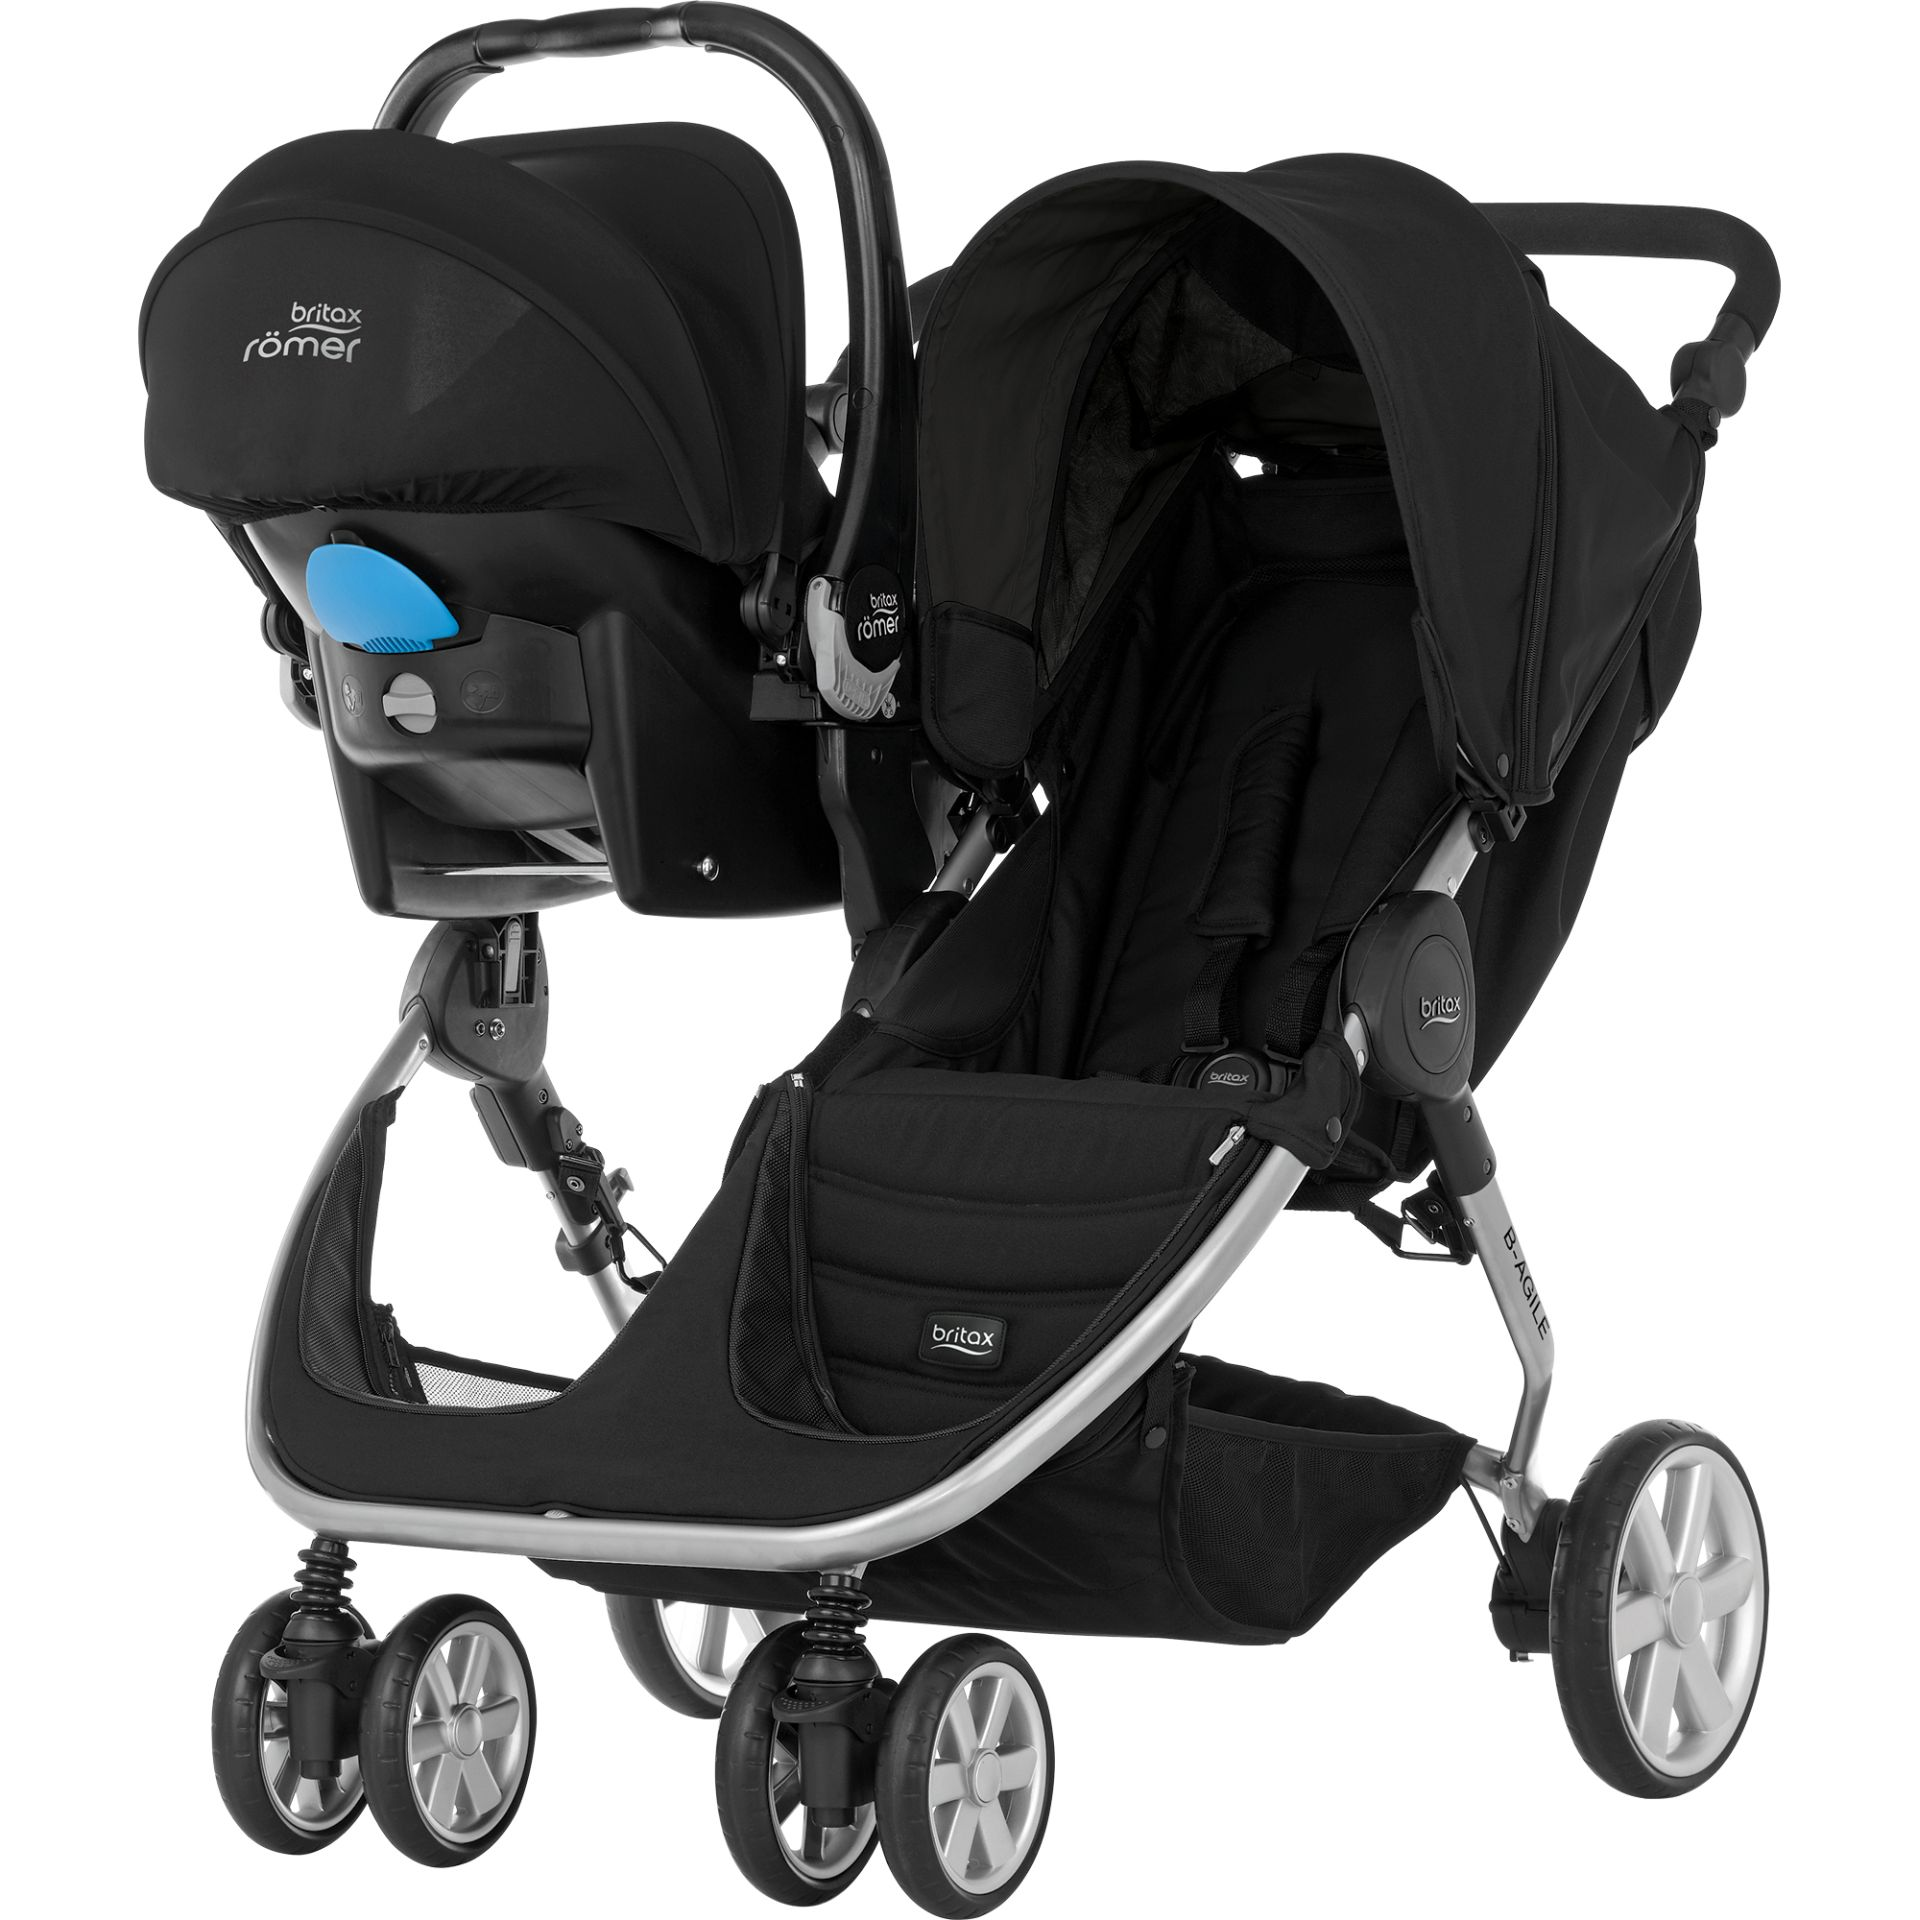 Britax Römer B AGILE DOUBLE & Go adapter 2016 large image 3